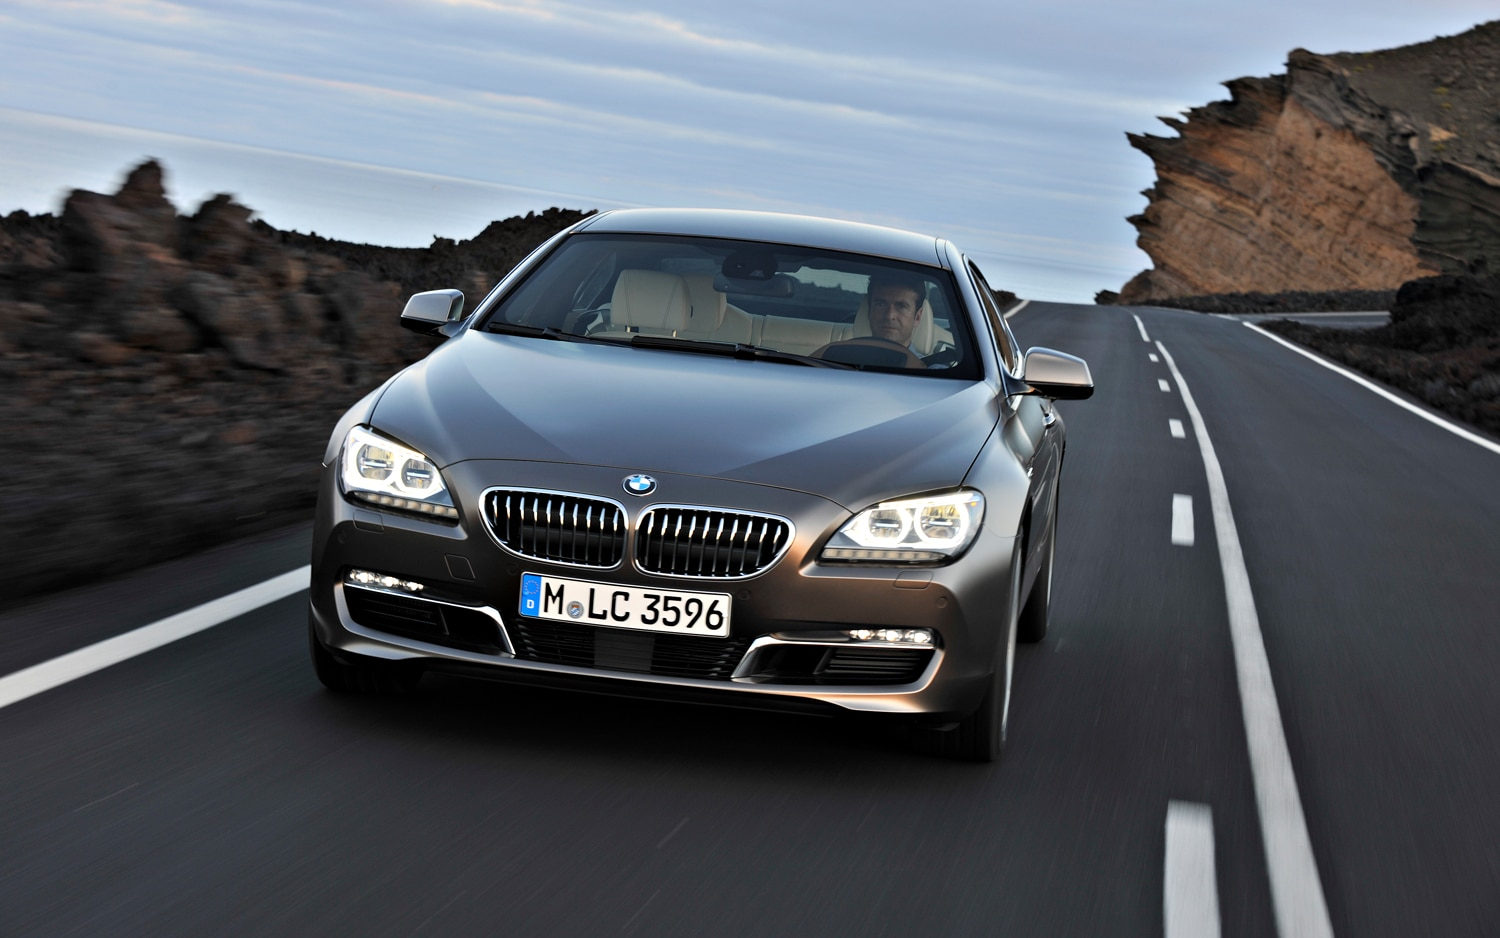 first look: 2013 bmw 6 series gran coupe - automobile magazine